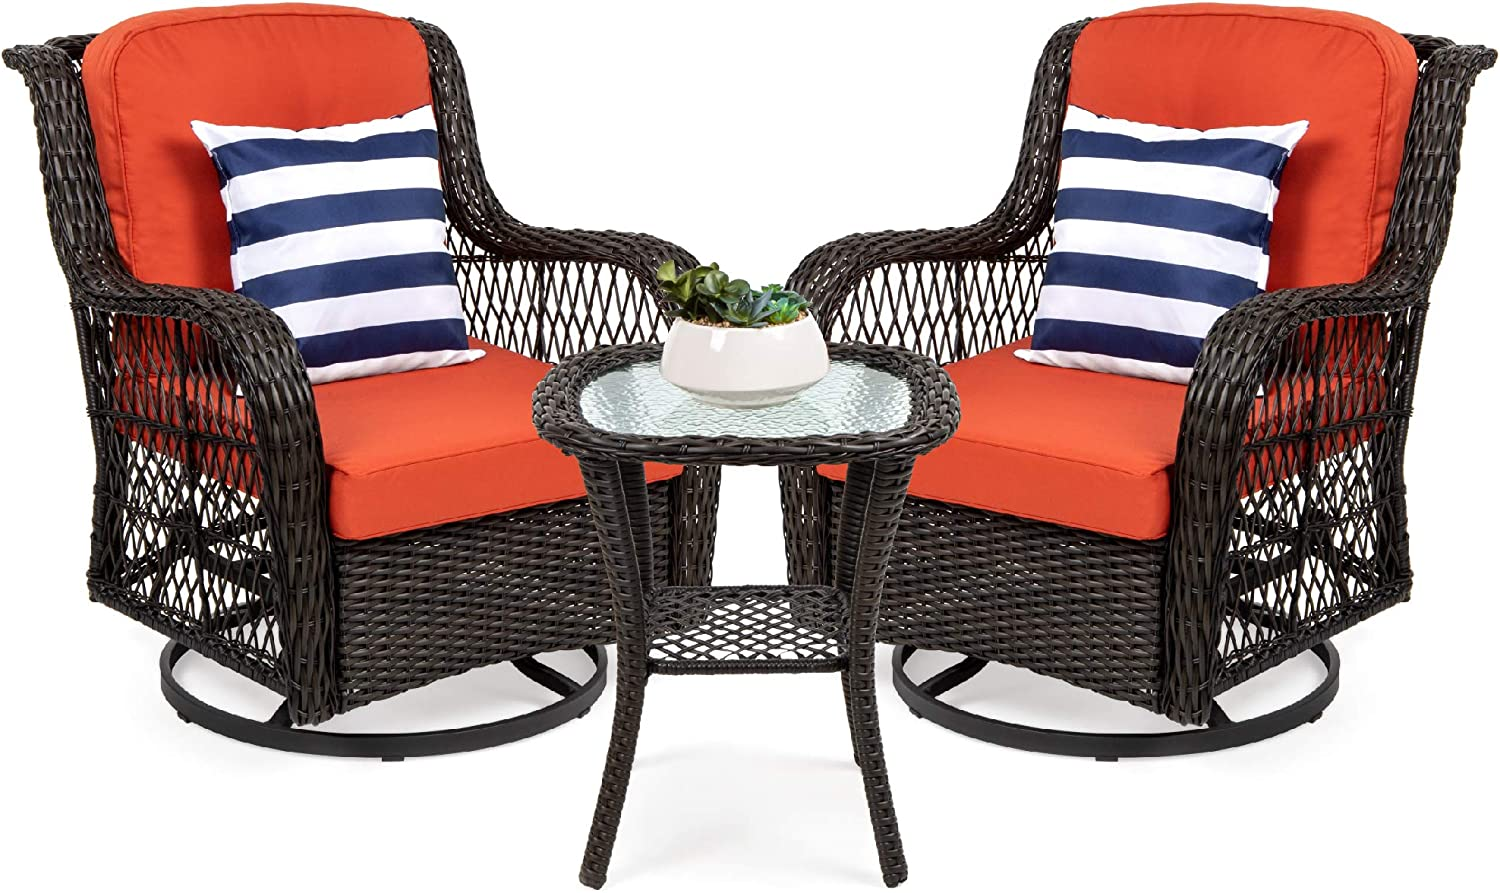 Best Choice Products 3-Piece Patio Wicker Bistro Furniture Set w/ 2 Cushioned Swivel Rocking Chairs, Side Table - Rust